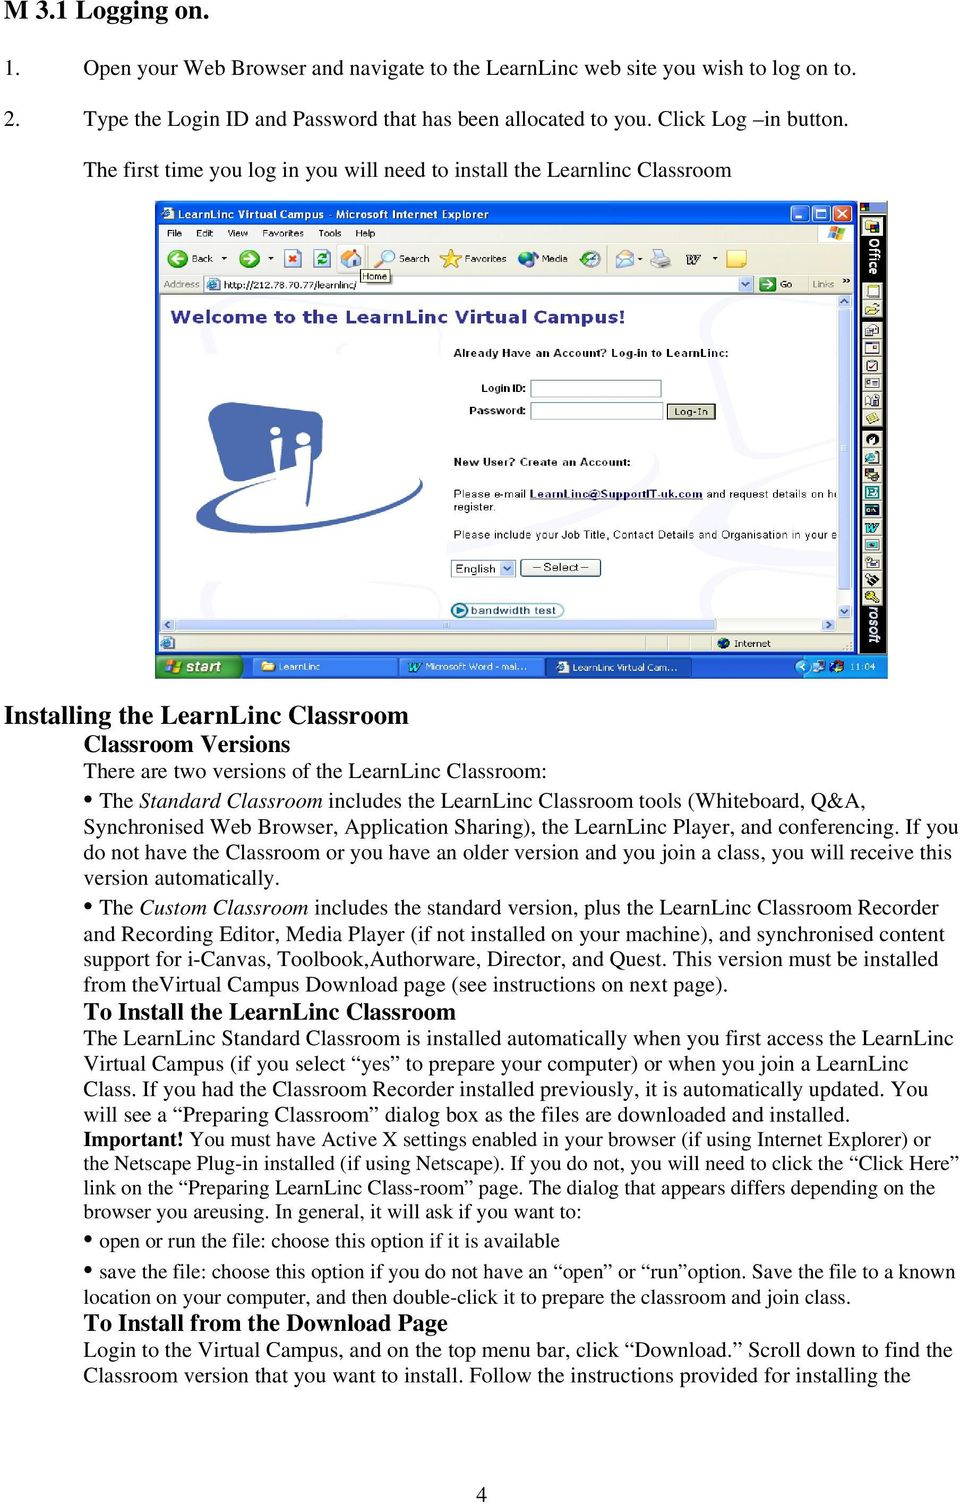 Classroom includes the LearnLinc Classroom tools (Whiteboard, Q&A, Synchronised Web Browser, Application Sharing), the LearnLinc Player, and conferencing.